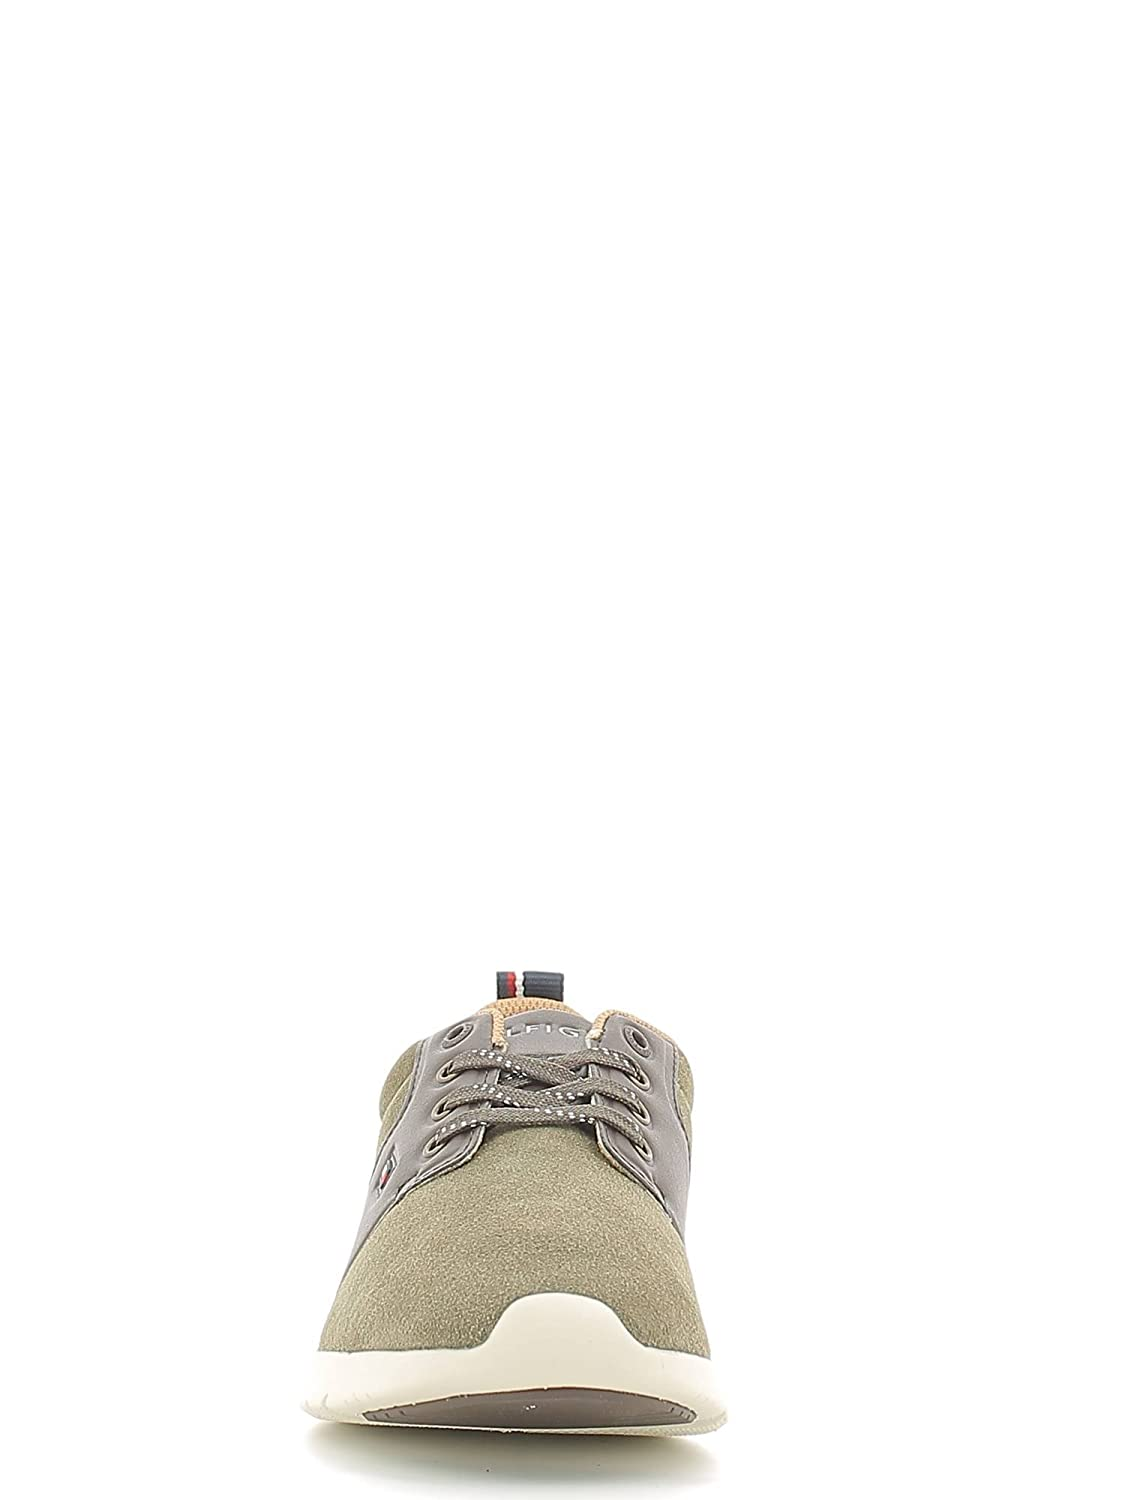 Tommy Tommy Tommy Hilfiger FM56822130 Sneakers Sneakers FM56822130 Hombre da39c0 ... bf4304